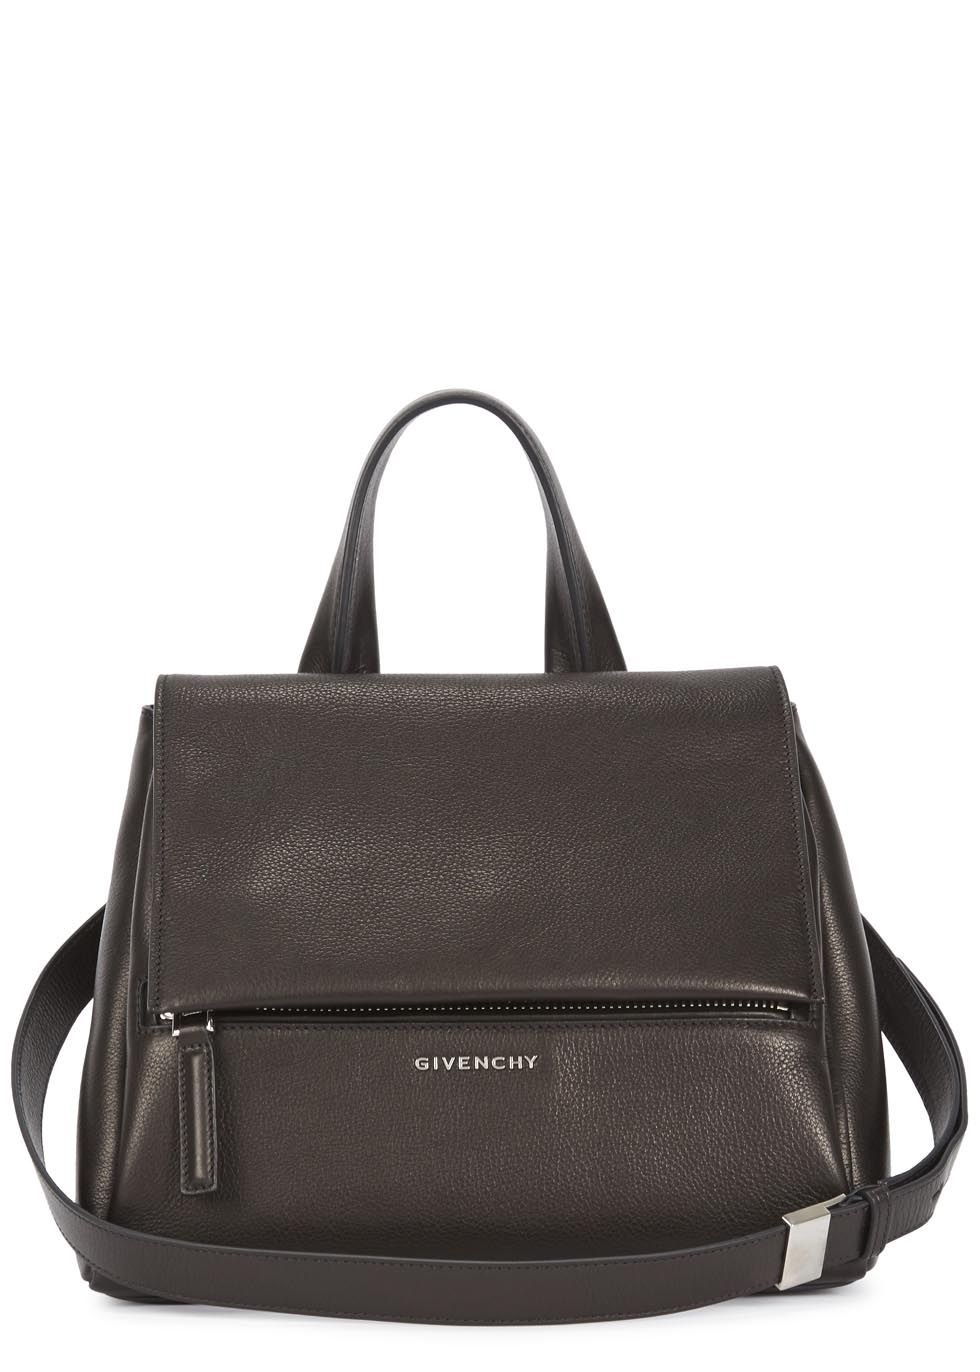 75ddcf200e Givenchy black grained leather tote One top handle